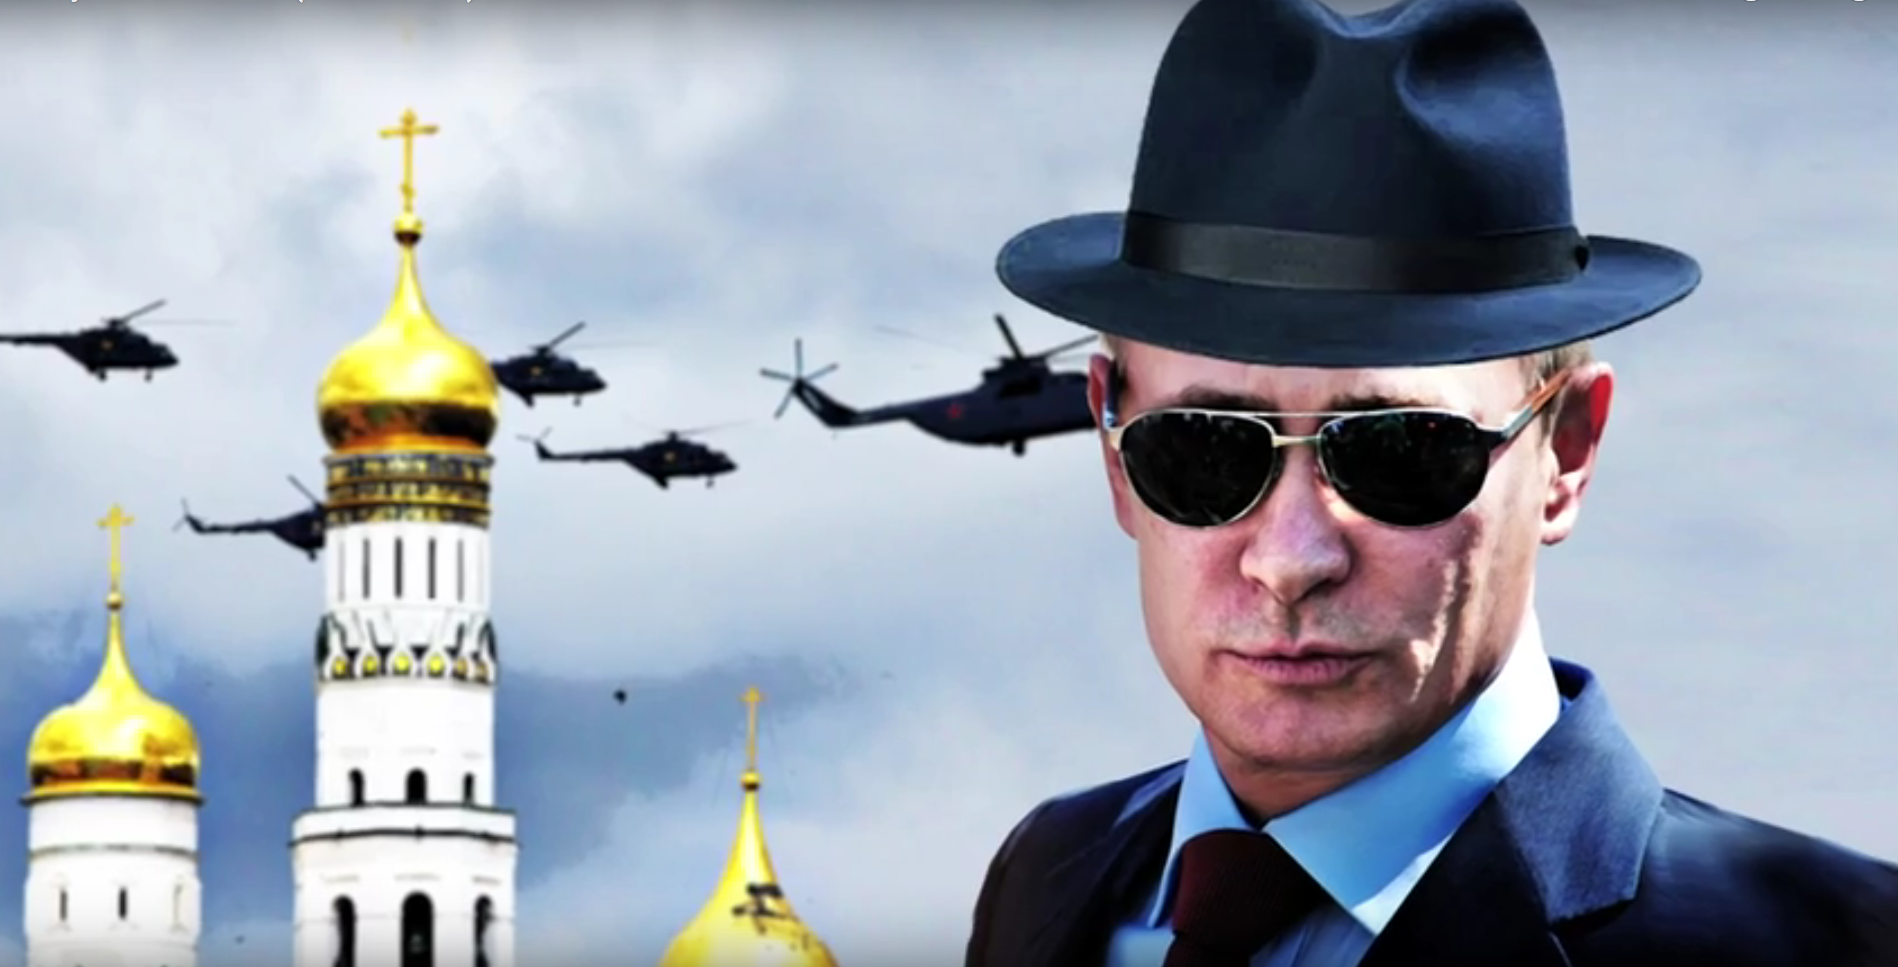 Randy Newmans Unique Defense Of >> Check Out Randy Newman S New Music Video All About Vladimir